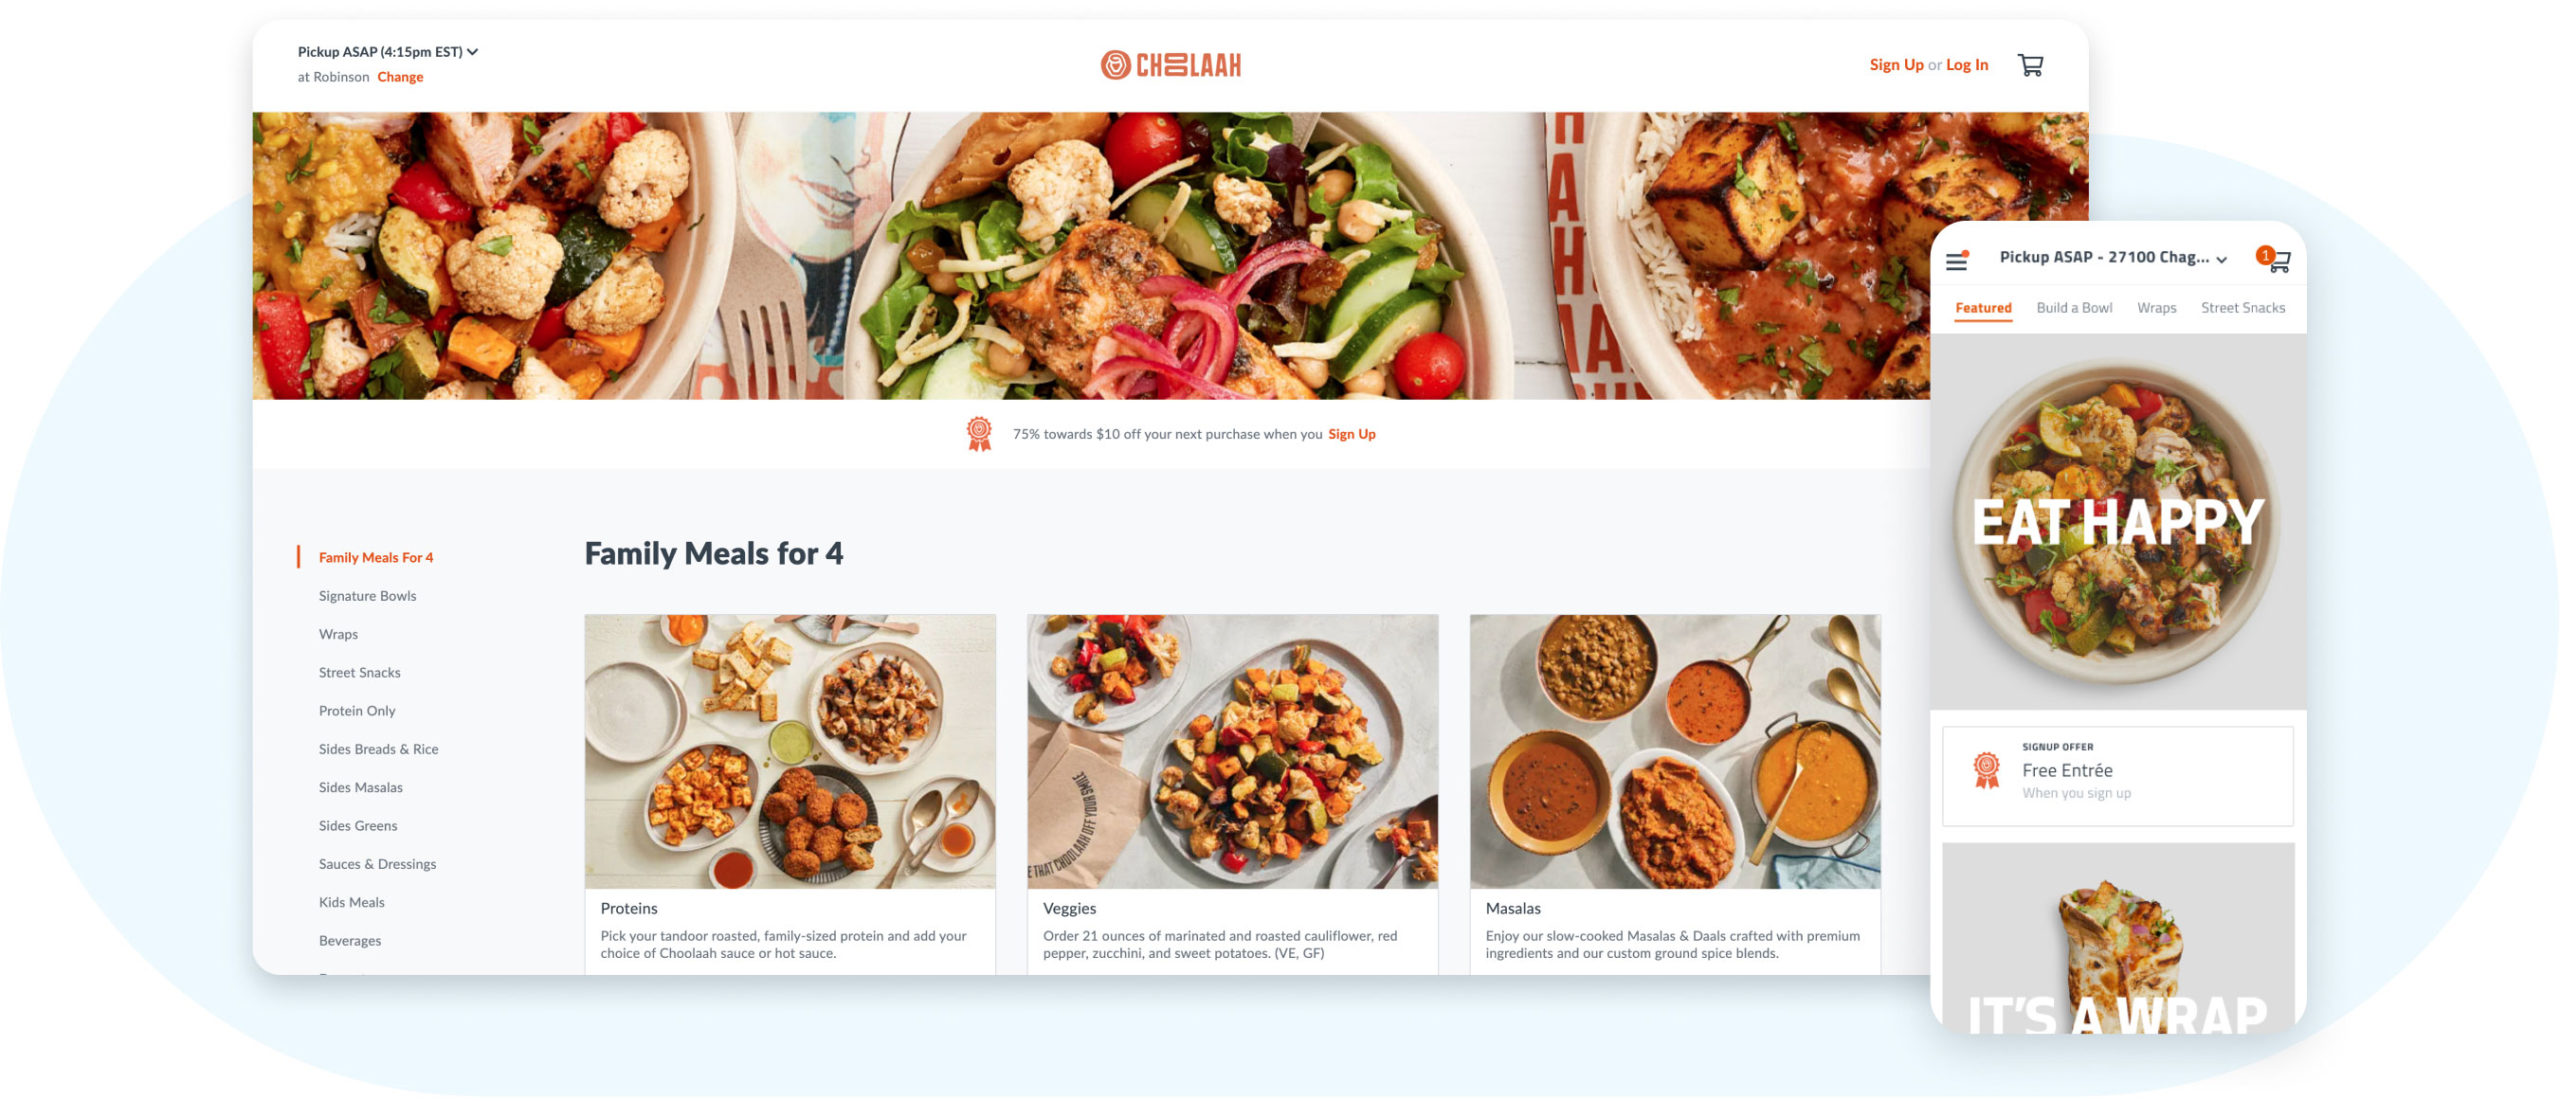 Choolaah web and mobile ordering experiences powered by Thanx